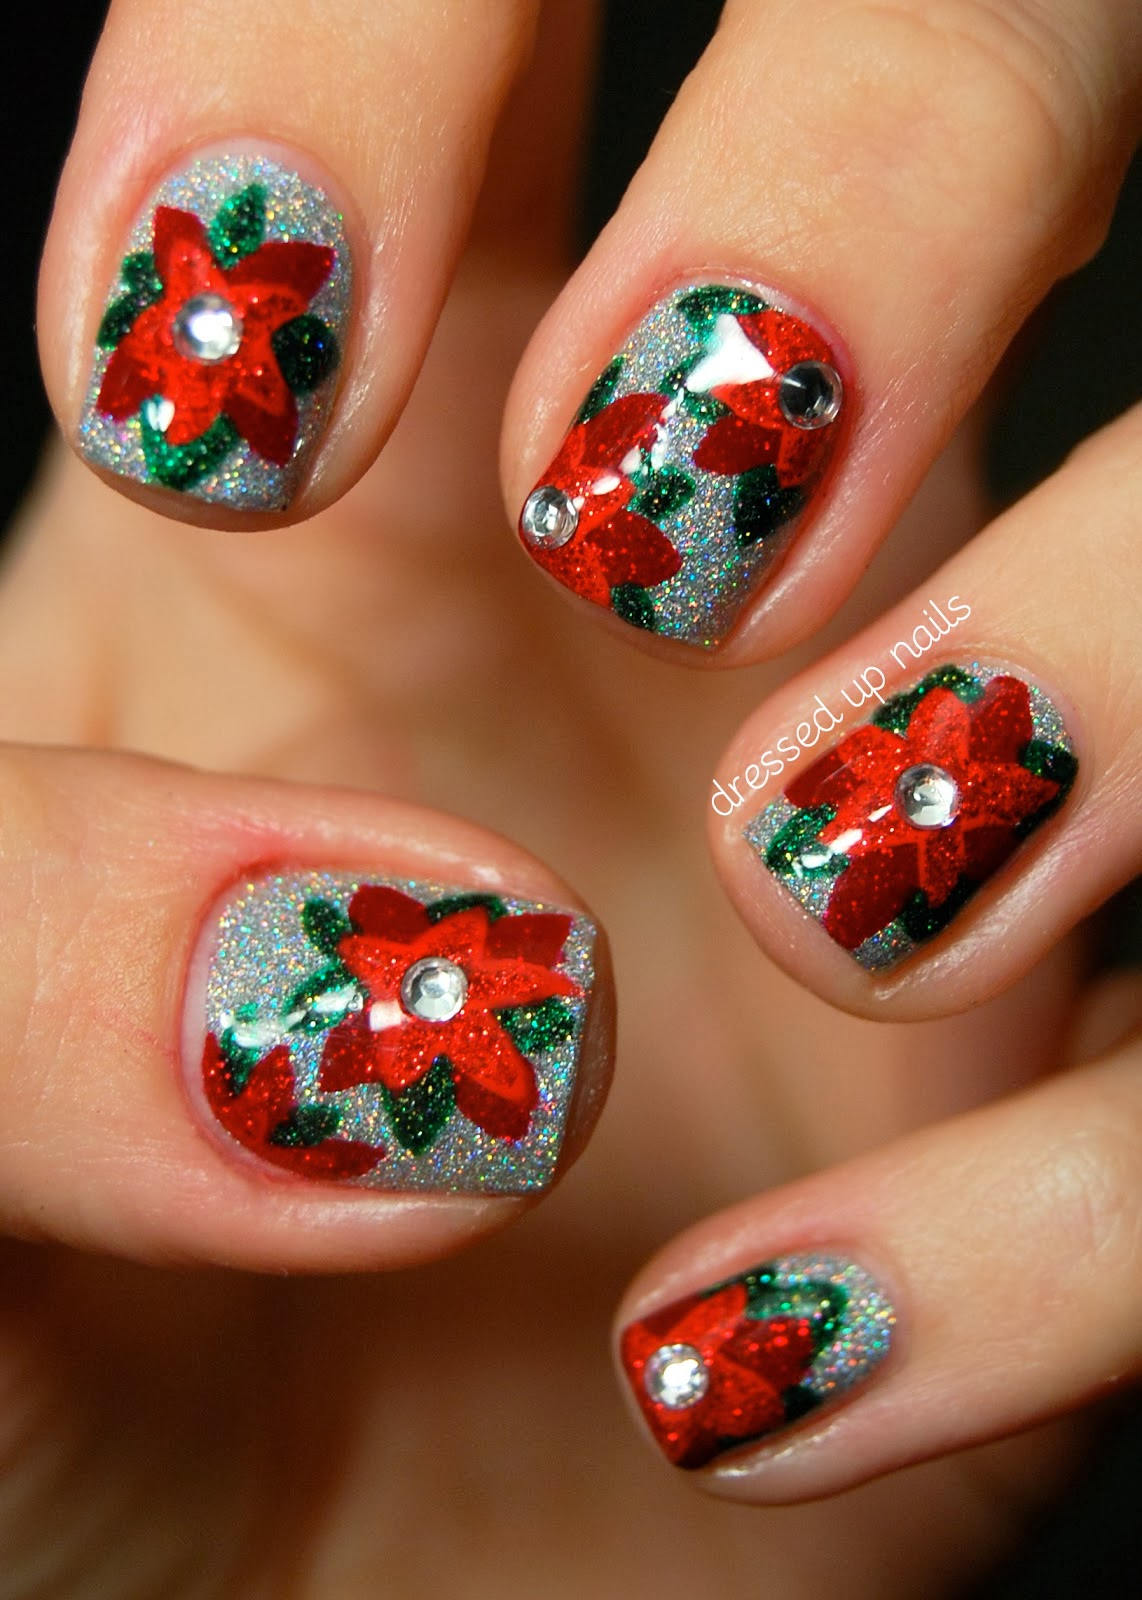 Maci Bookout: Awesome Holiday Nail Art